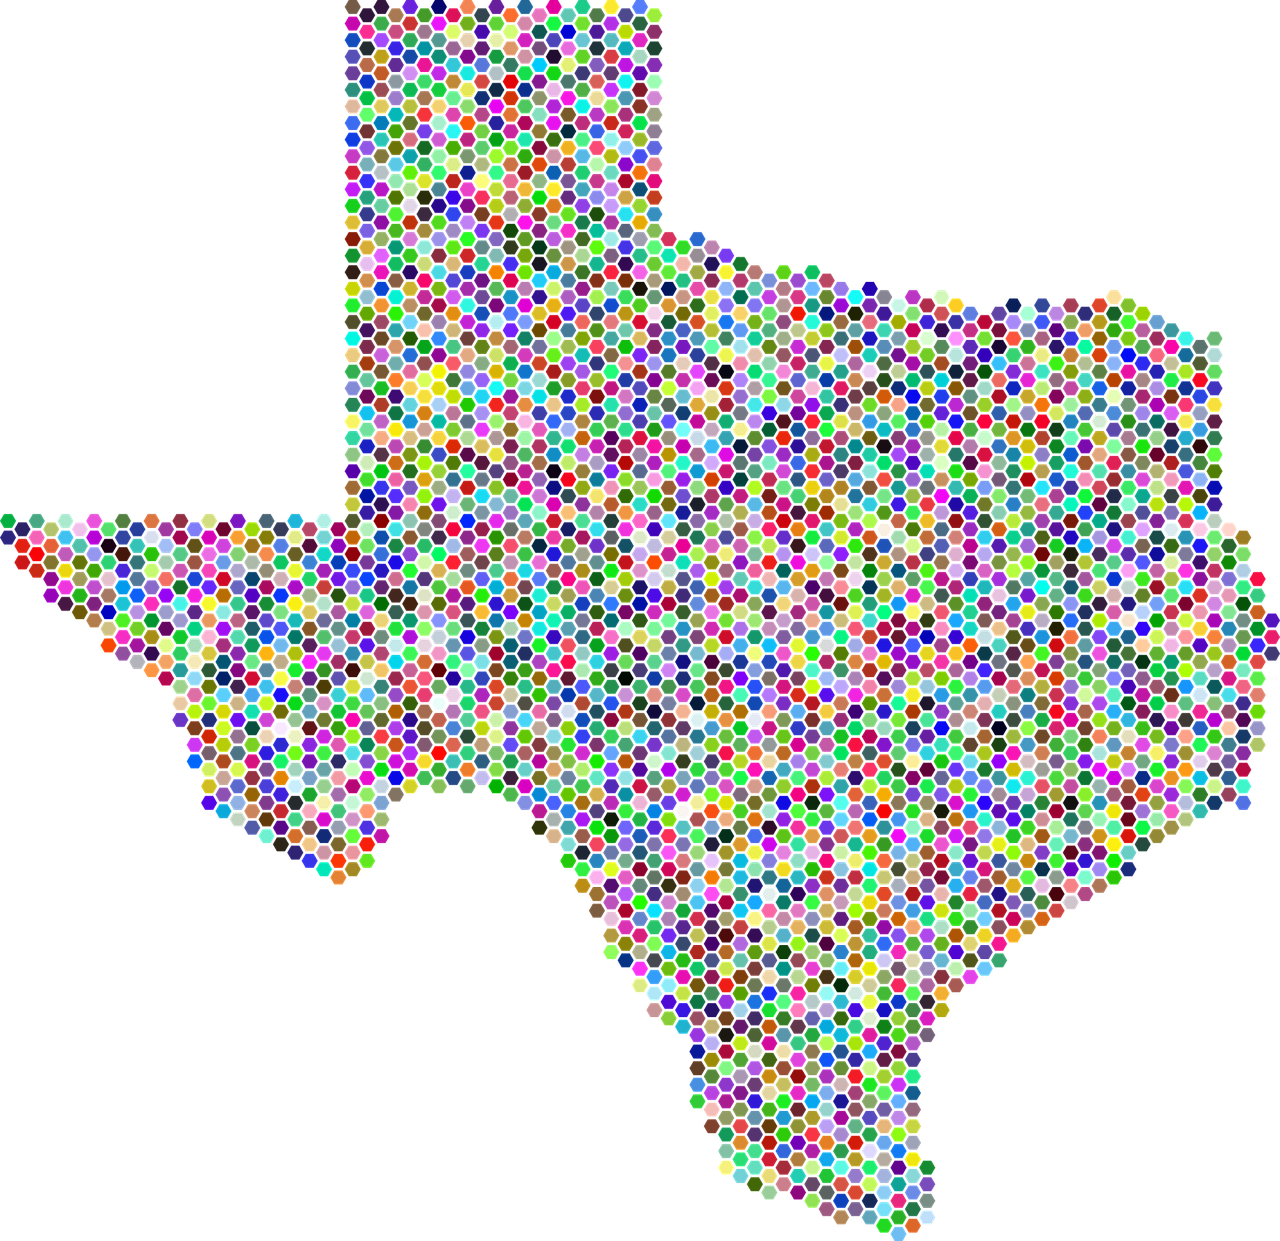 Texas Study of Nonprofits